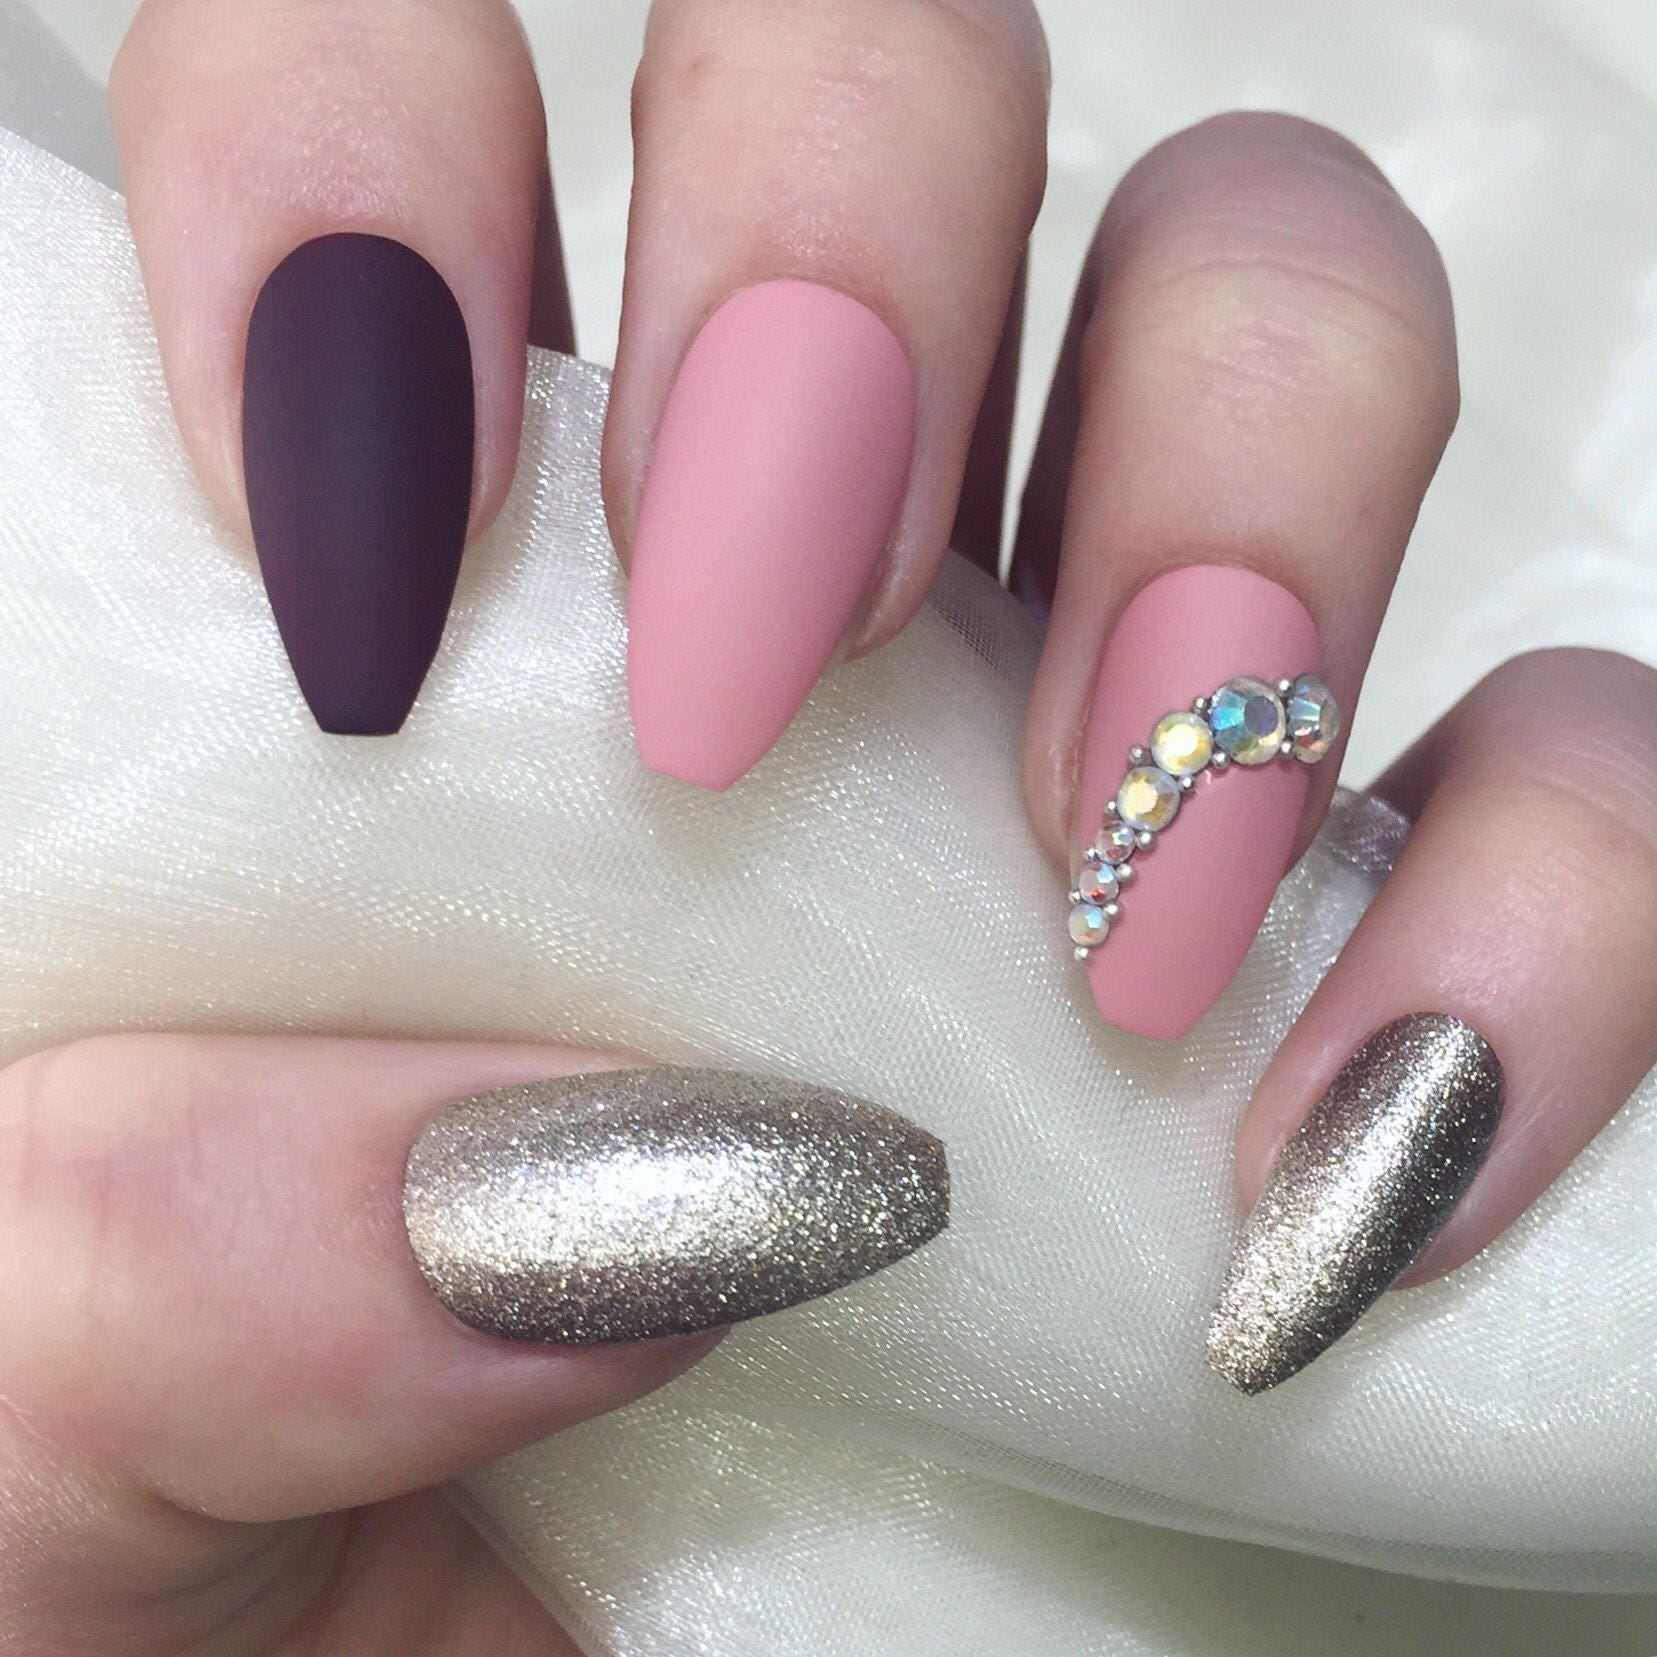 Matte dusty pink champagne and burgundy long coffin nails.